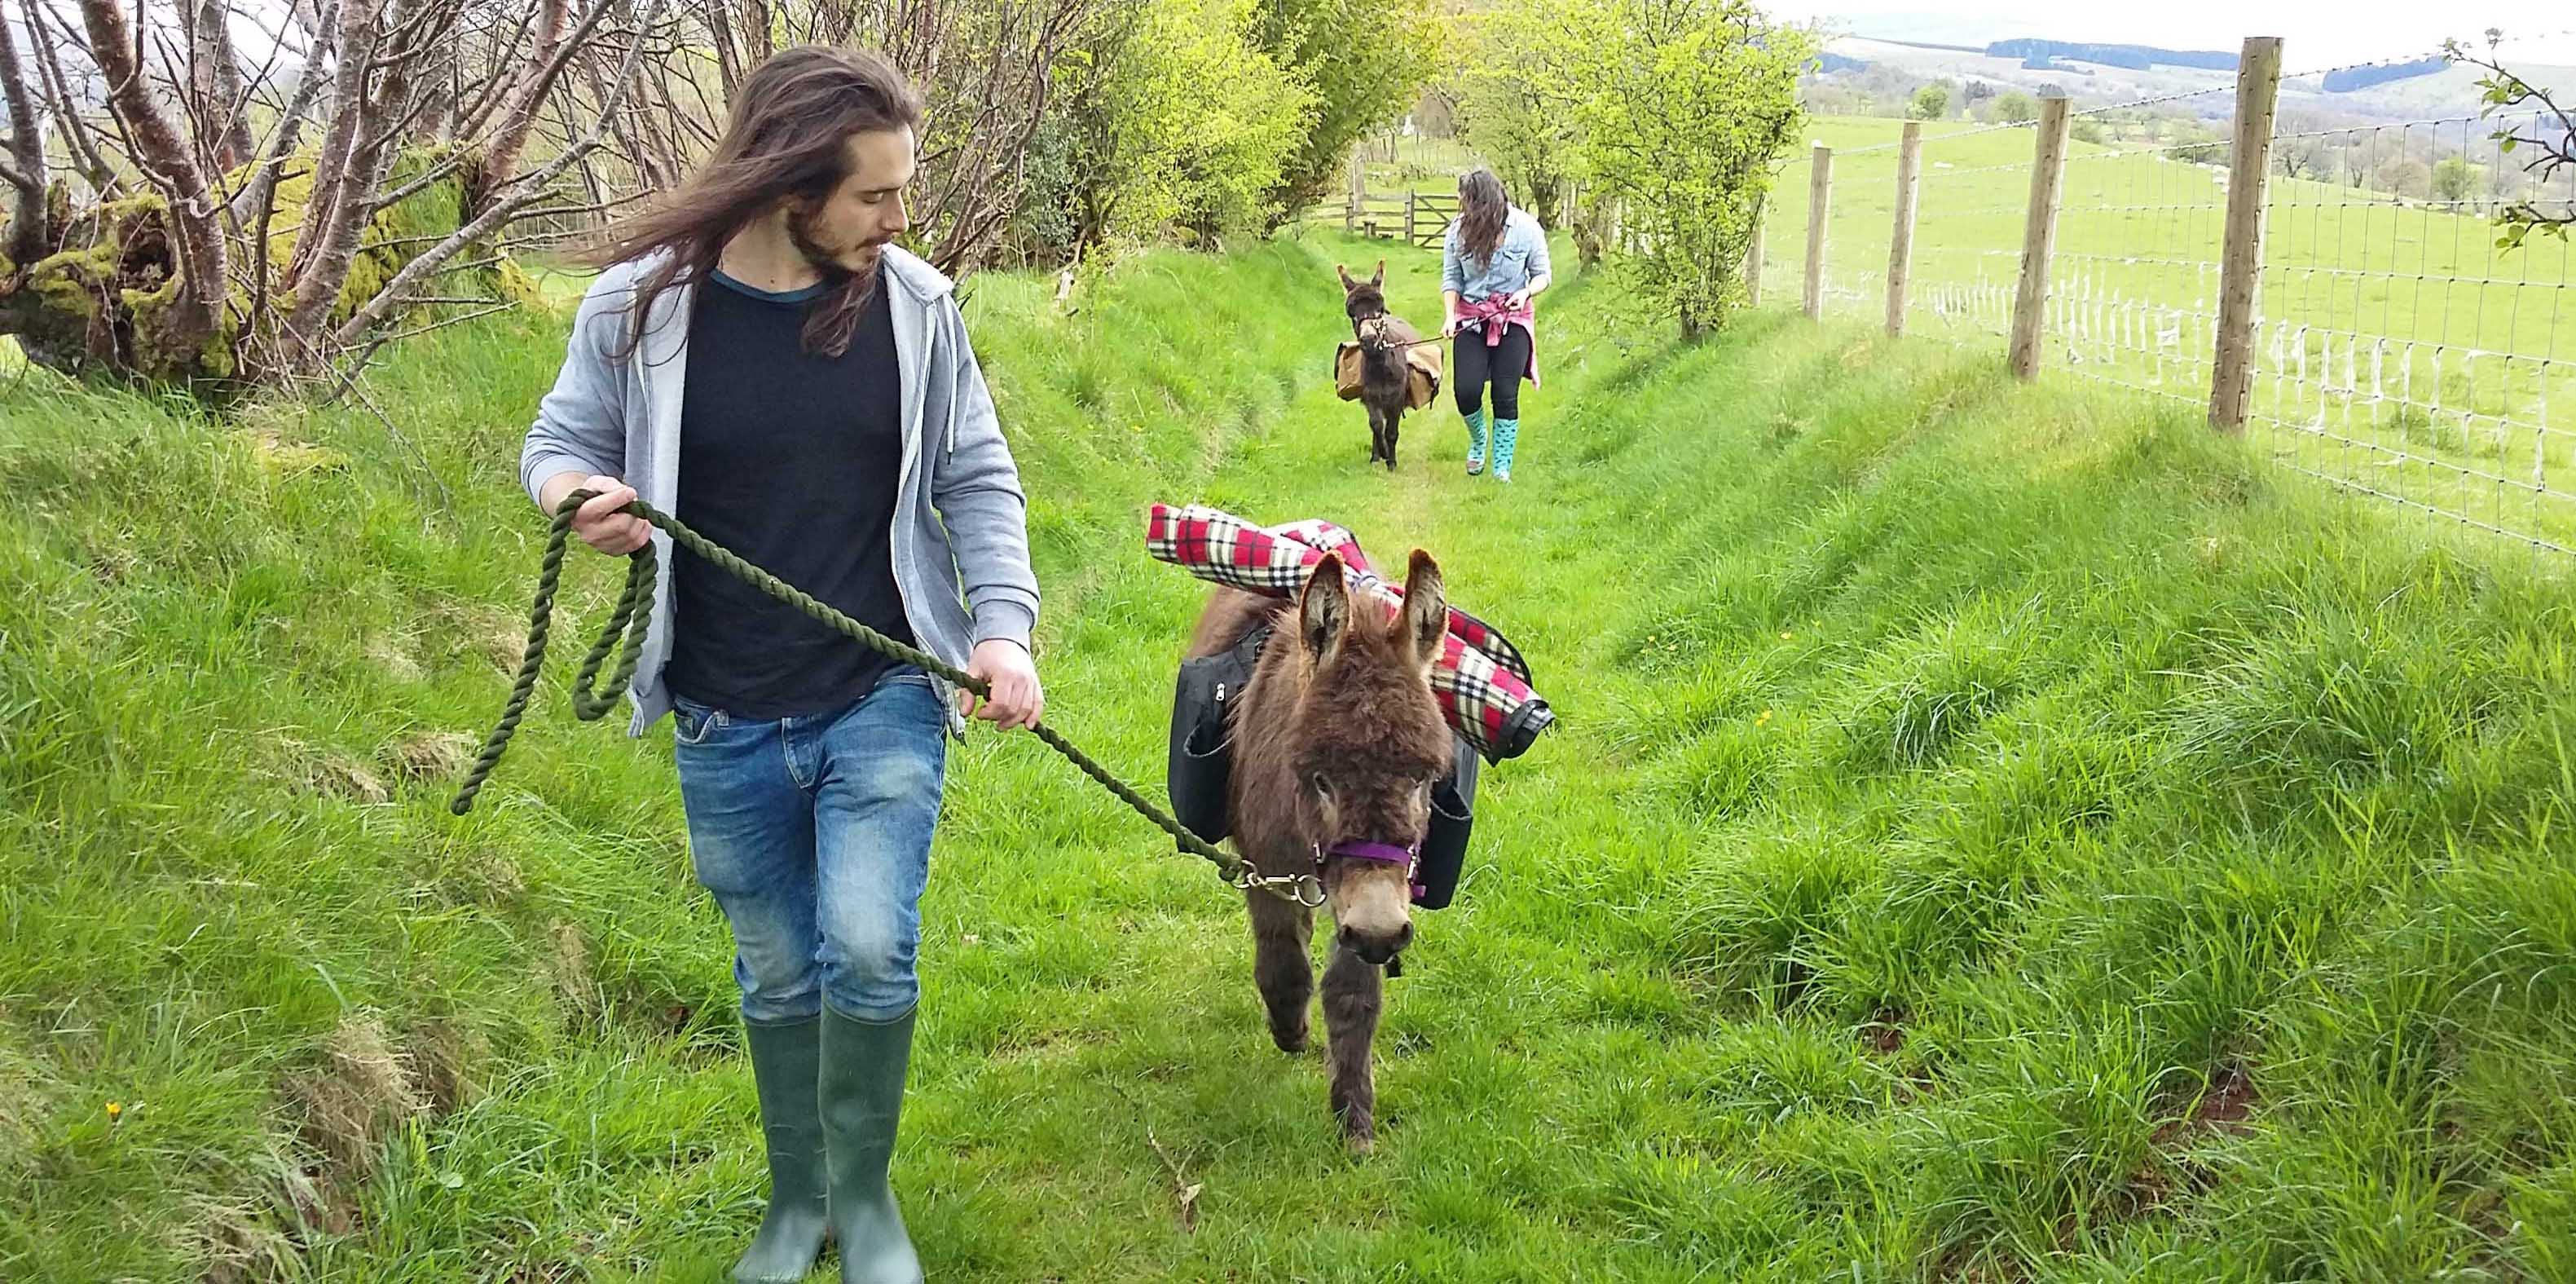 Walk a pair of mini donkeys in the Brecon Beacons